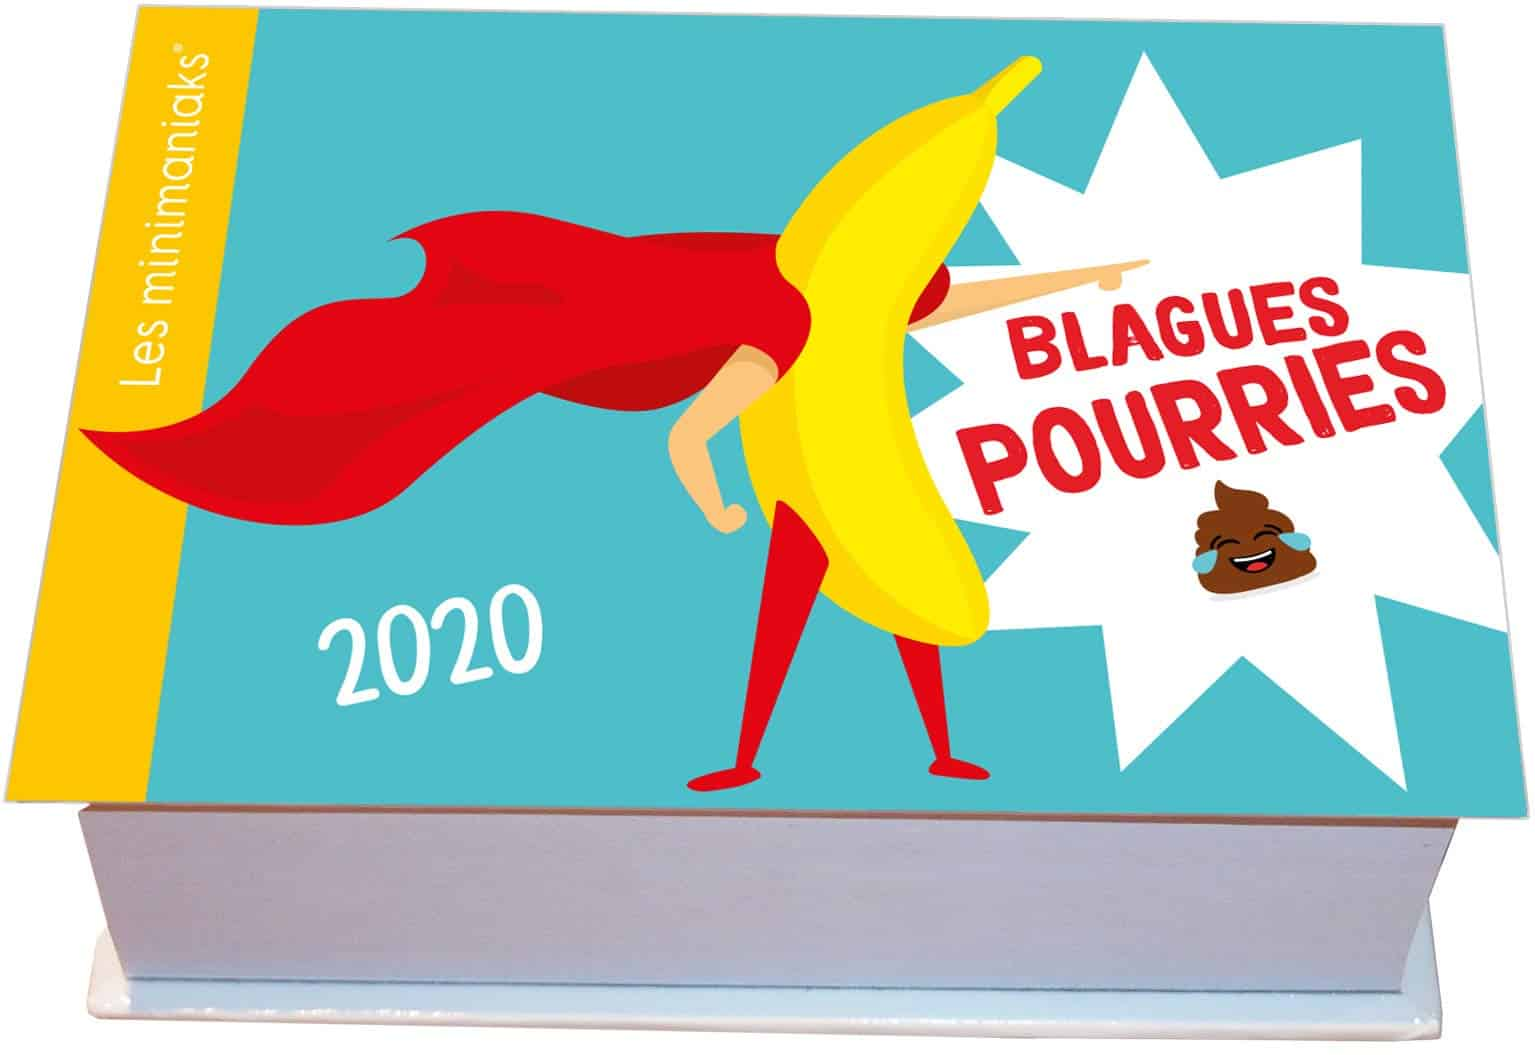 Blagues Pourries 2020